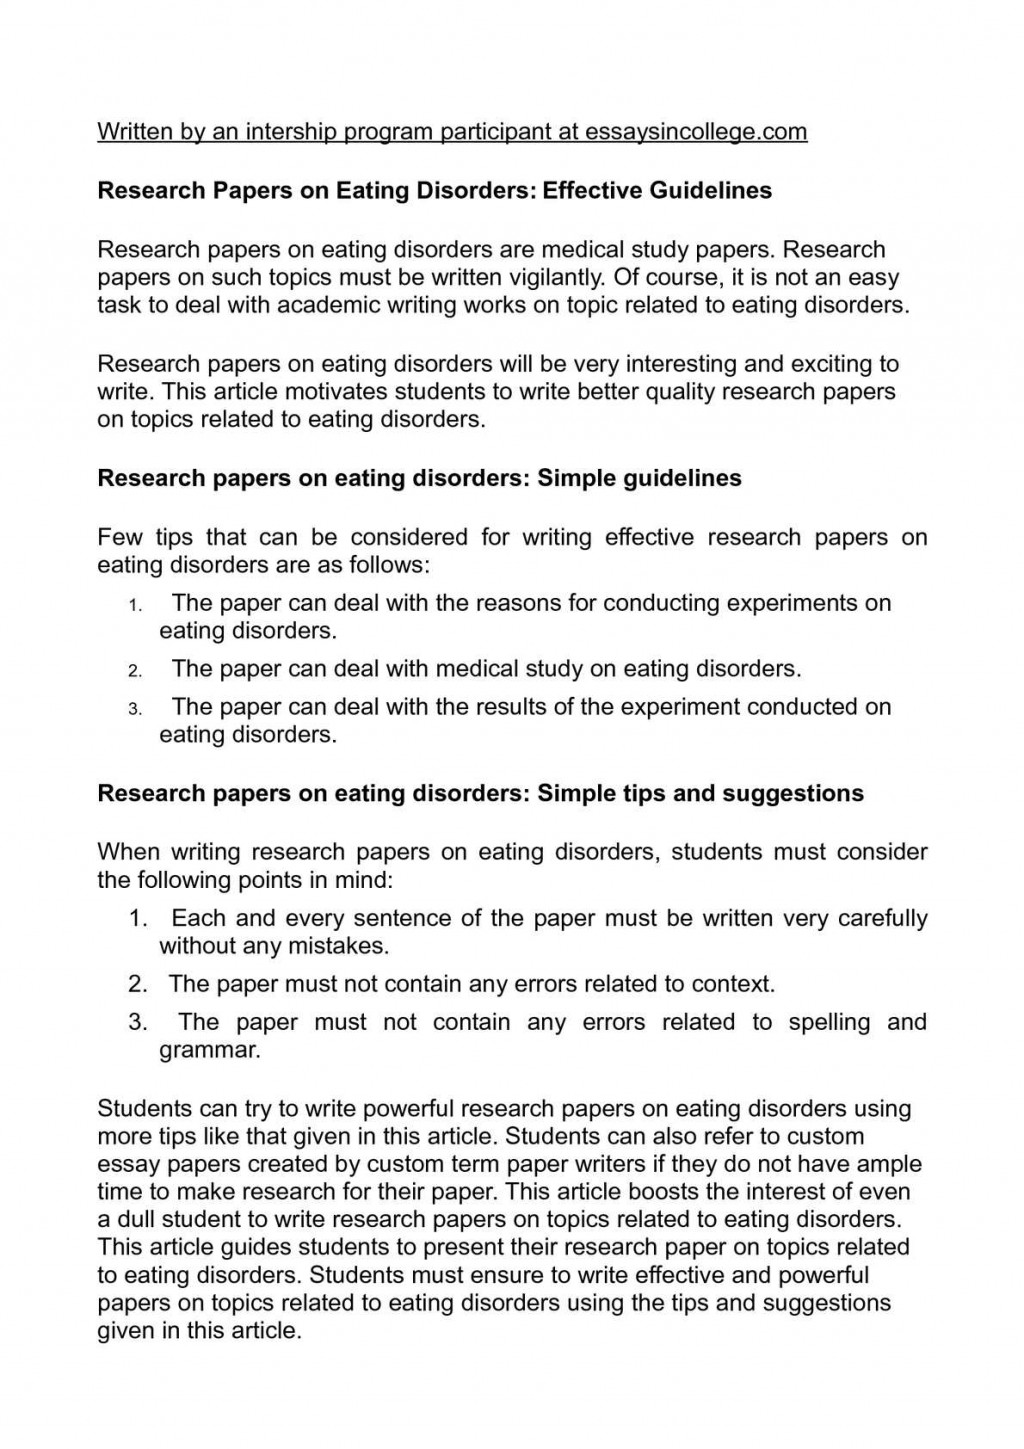 018 Research Paper On Eating Disorders Wonderful Topics Articles And The Media Large